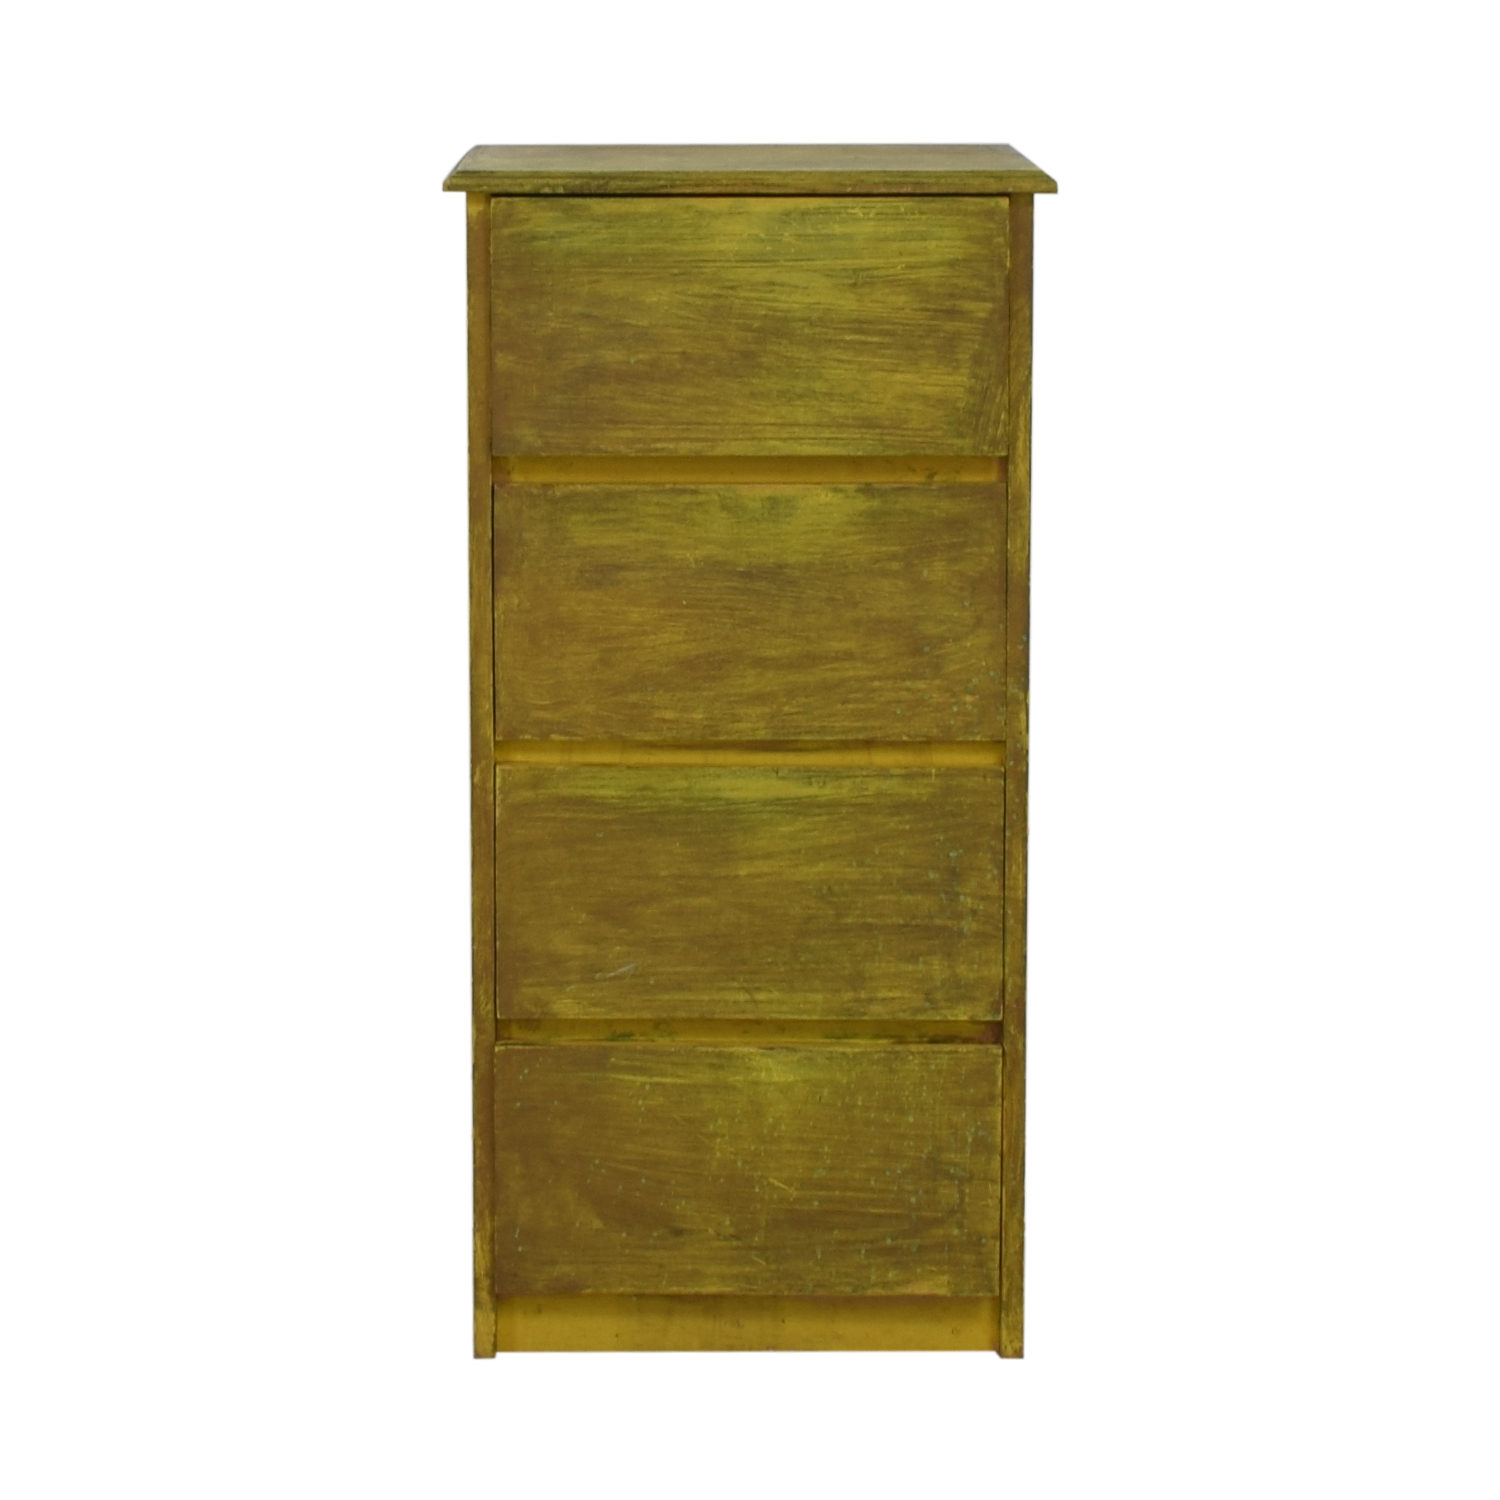 Joss & Main Joss & Main Distressed Green Four-Drawer Dresser dimensions